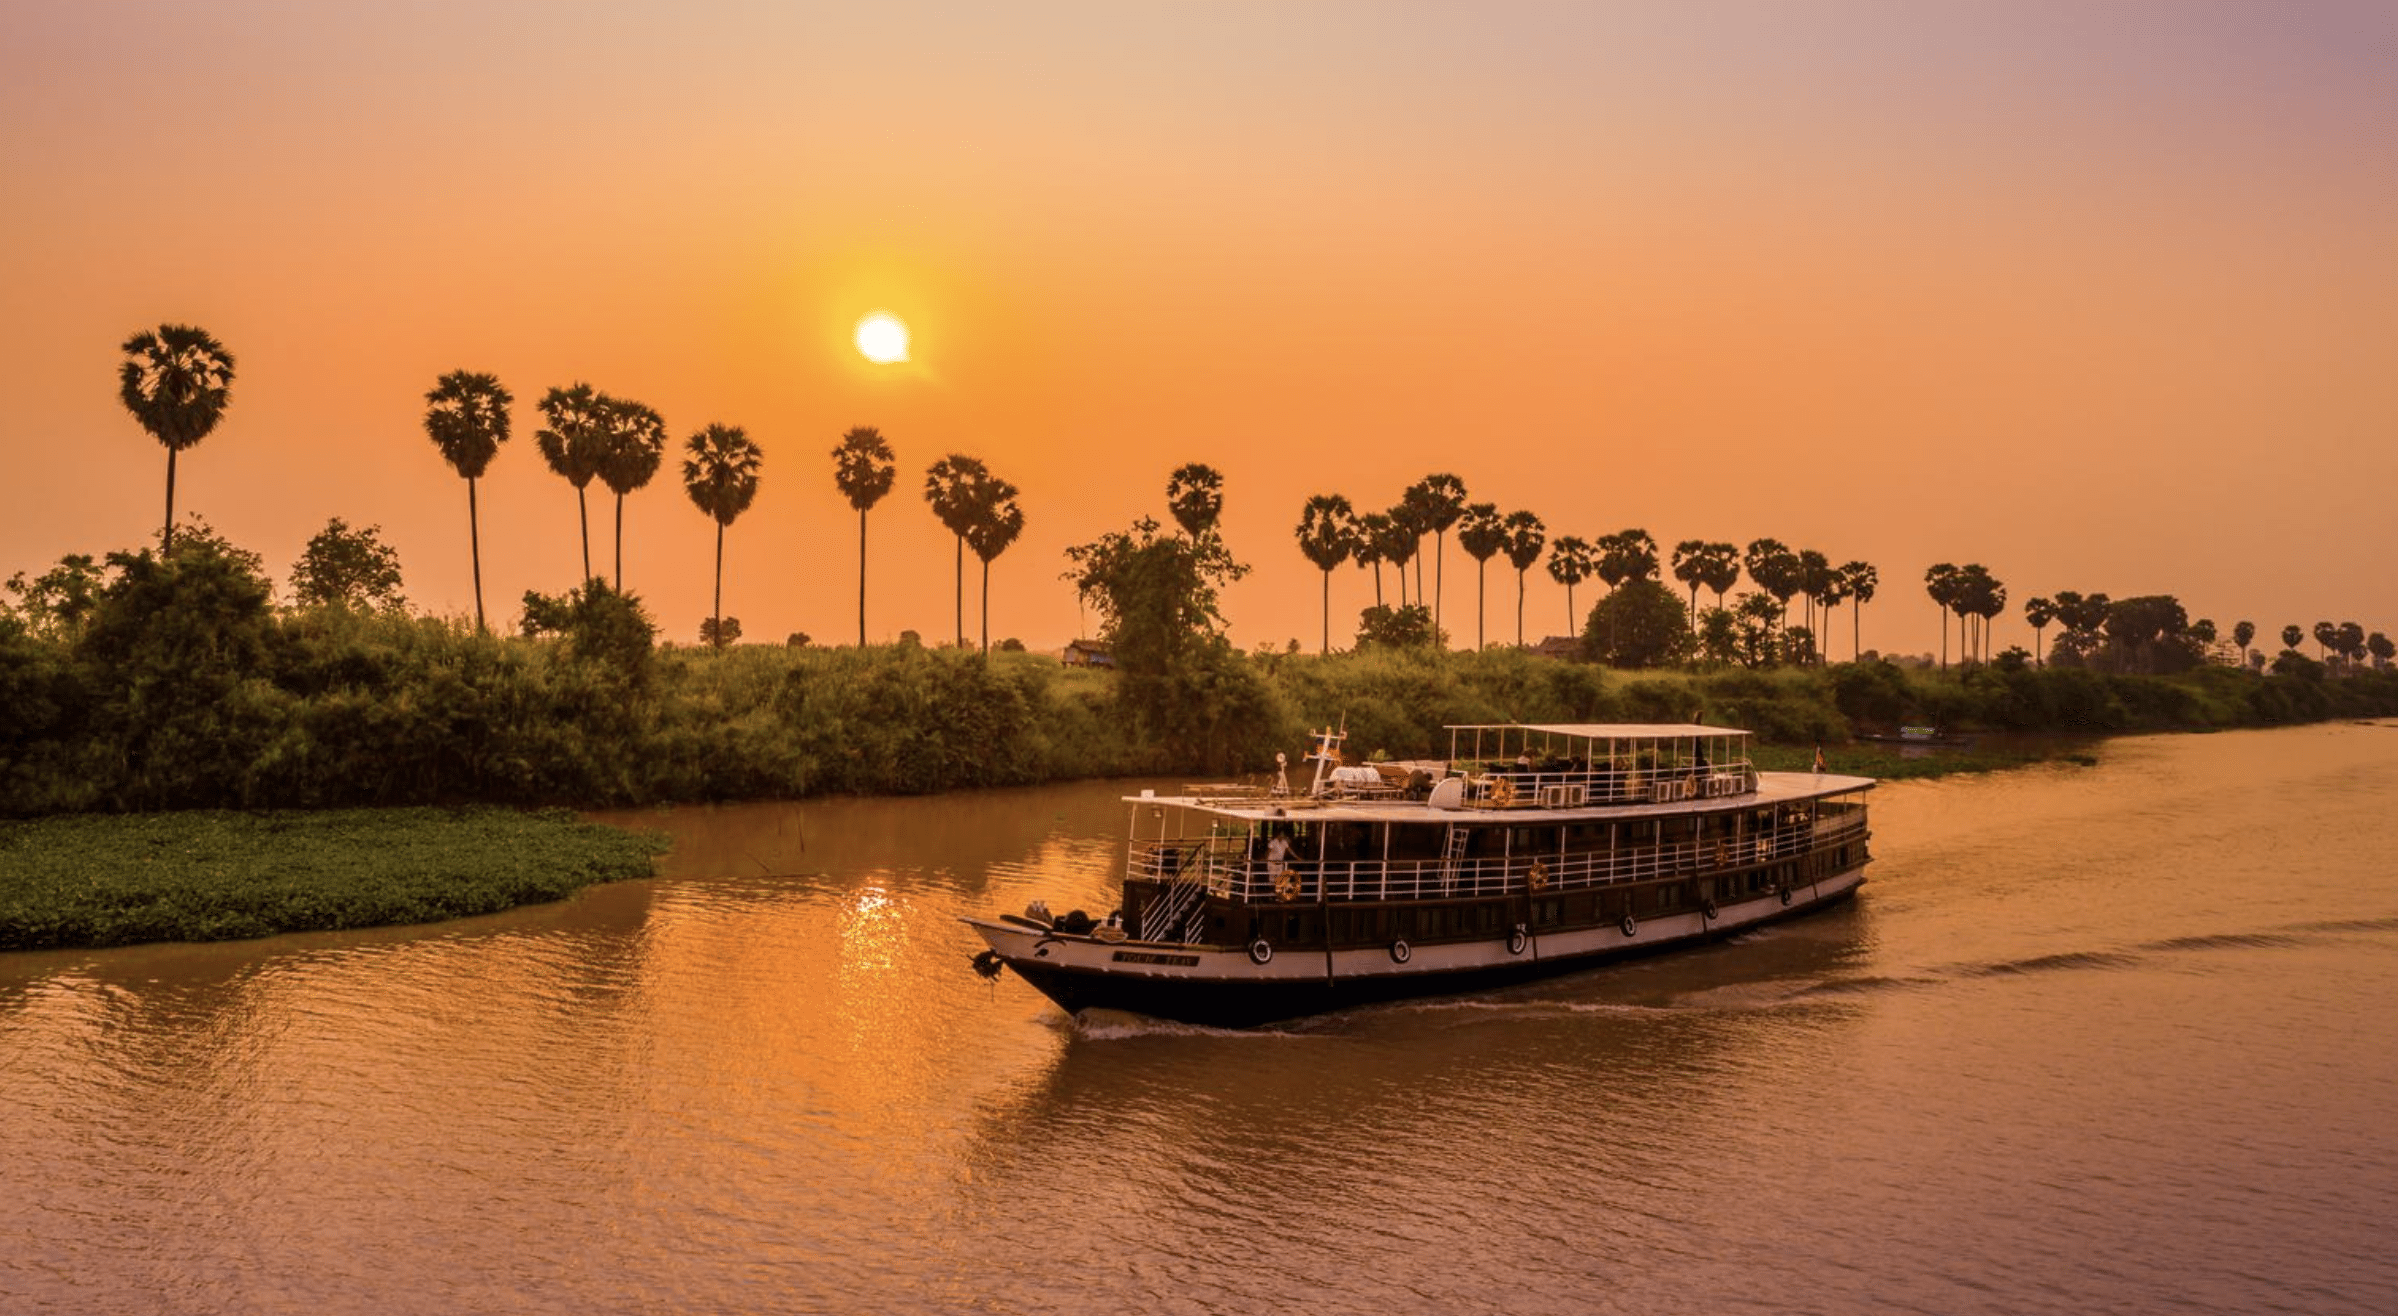 Mekong River Cruise Vessel